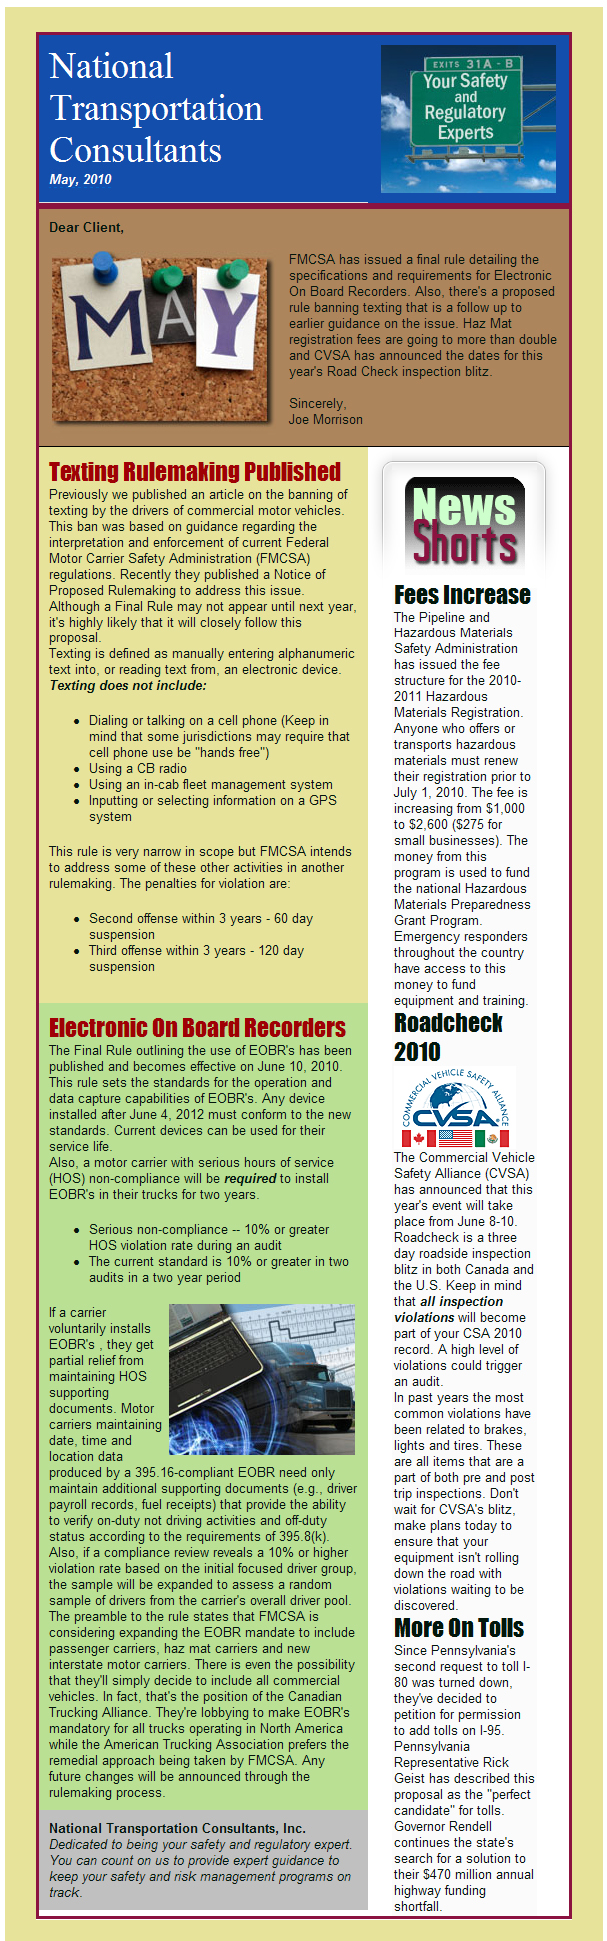 Electronic On Board Recorder Rule, Haz Mat Fees Increase, RoadCheck Dates